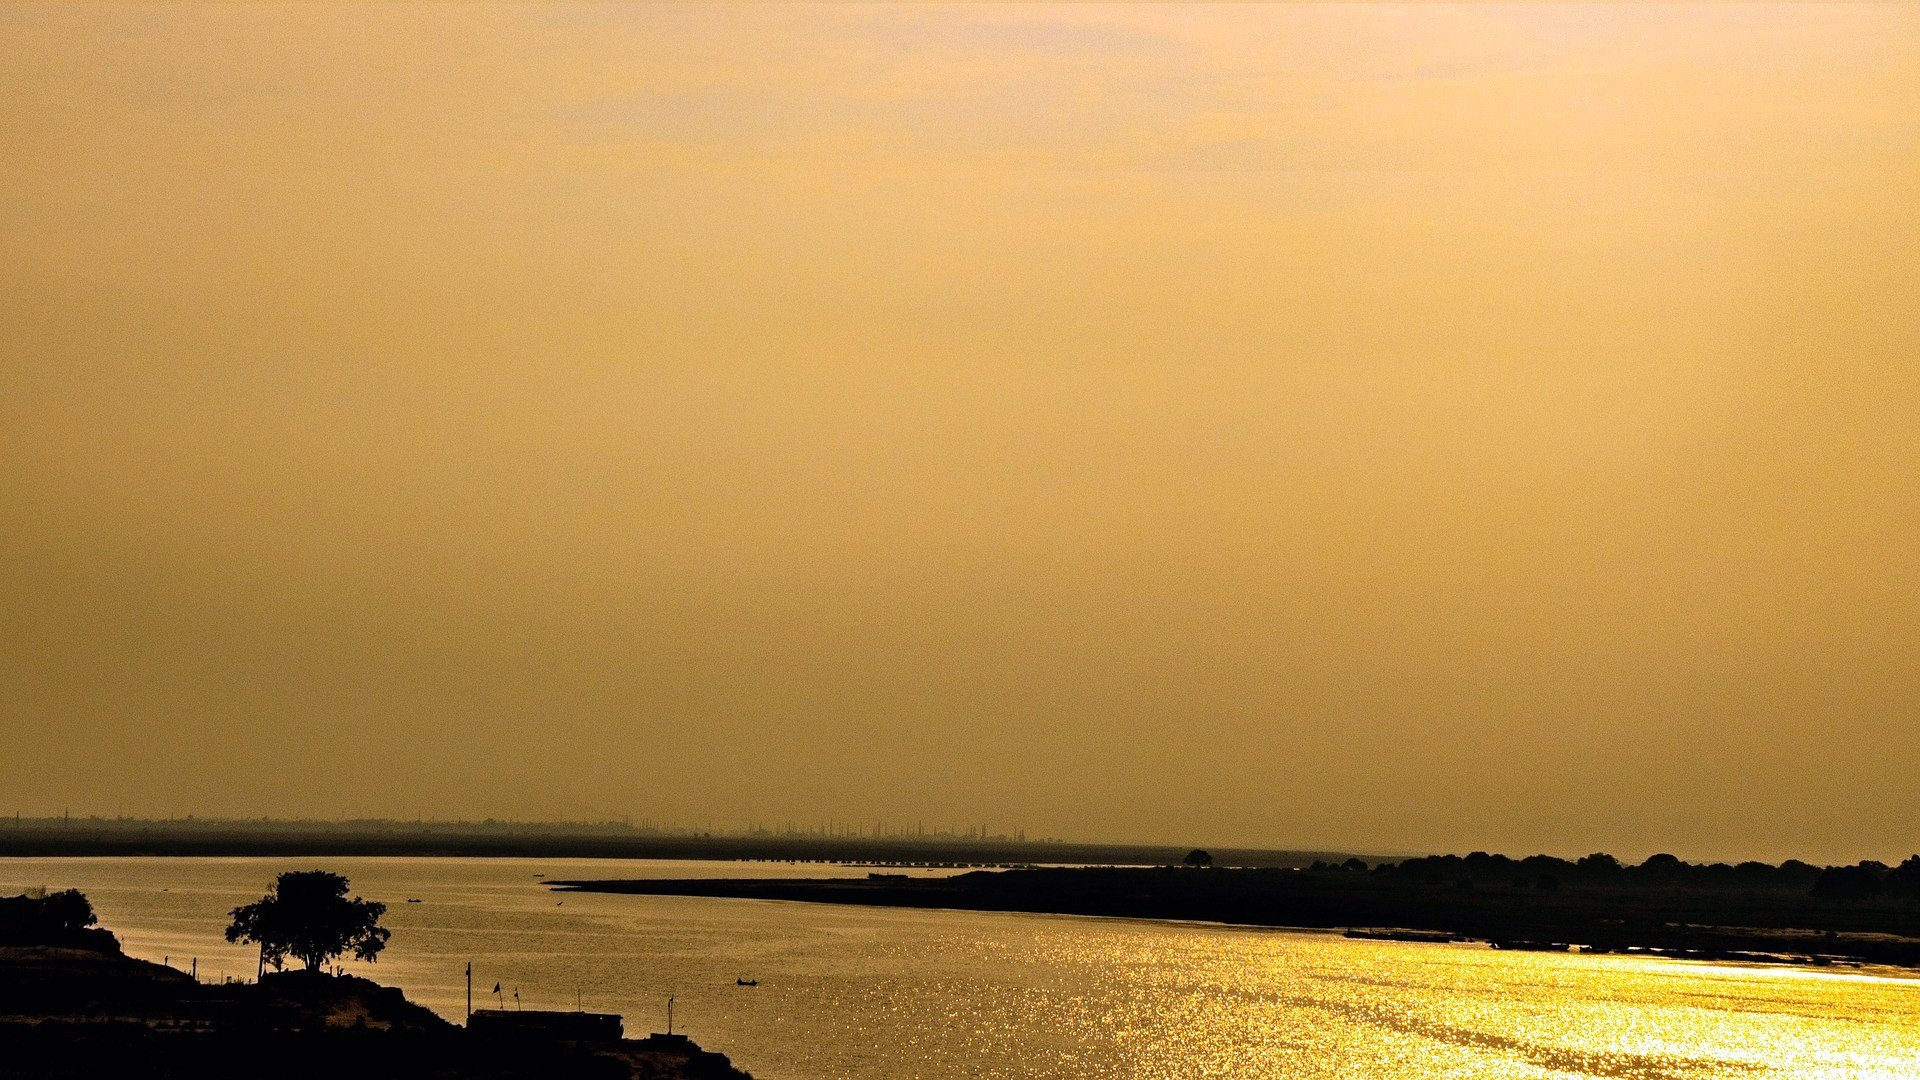 Patna has a scenic location on the Ganges River